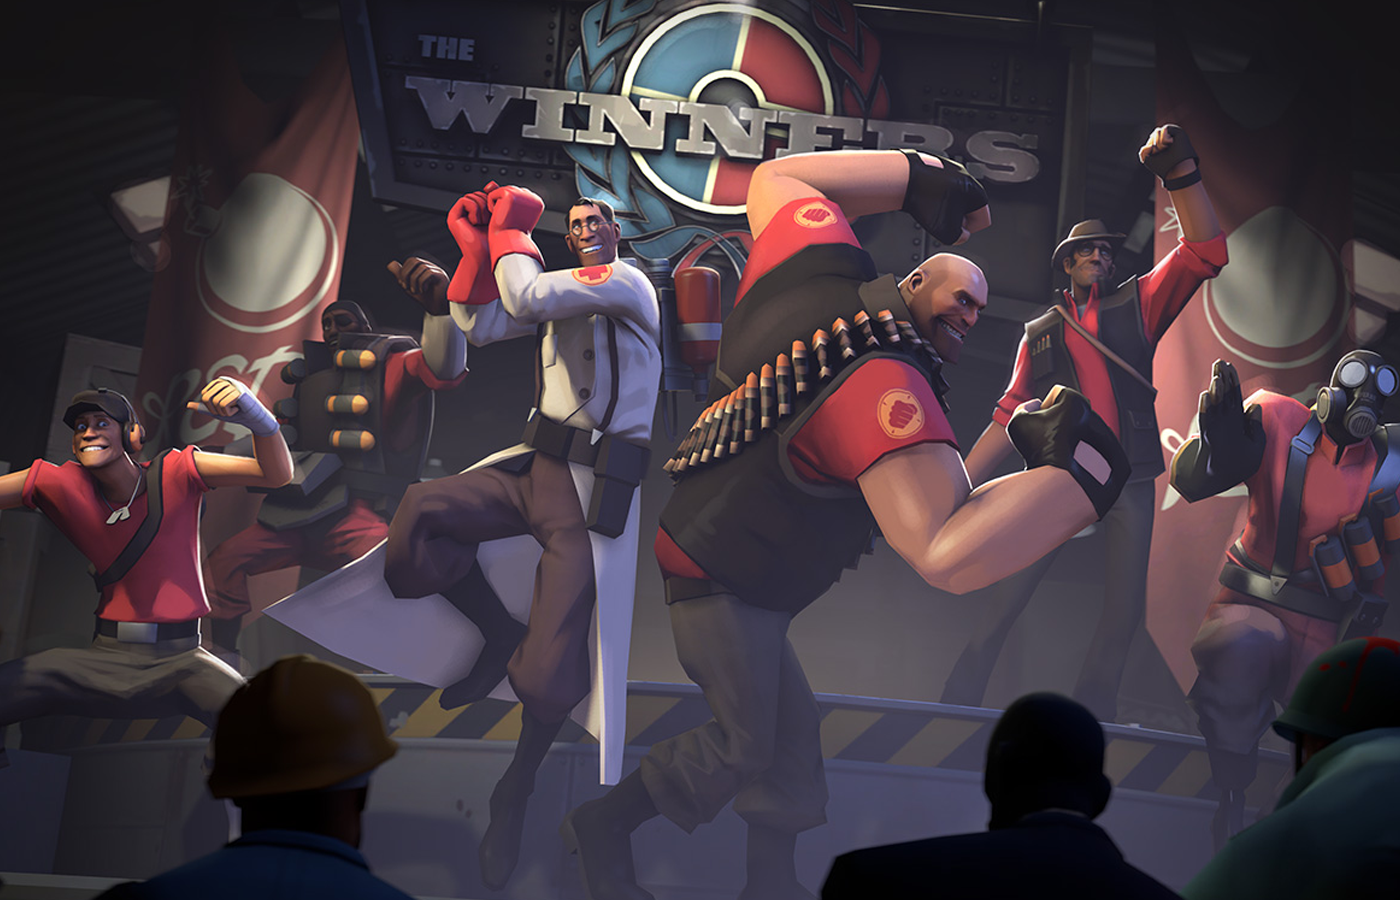 team fortress 2 competitive matchmaking Team fortress 2 is getting a beta for a new competitive matchmaking mode valve opened a special community forum dedicated to the upcoming beta earlier this week, in which it will share further announcements and news about the campaign a member of the development team confirmed on the team.